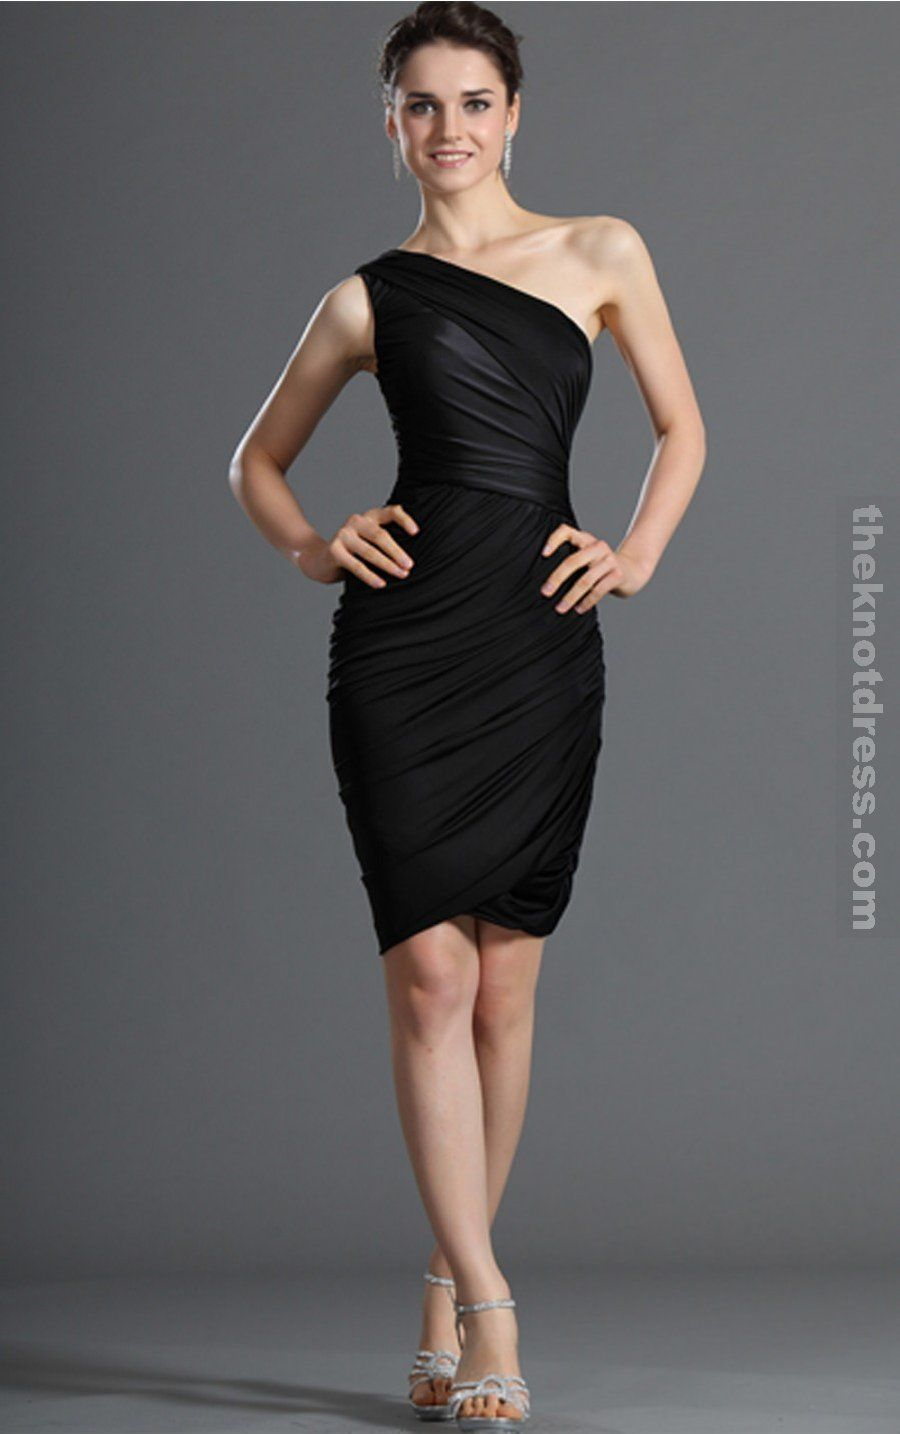 5ce5b64a31677 knee length black one shoulder dress - Google Search